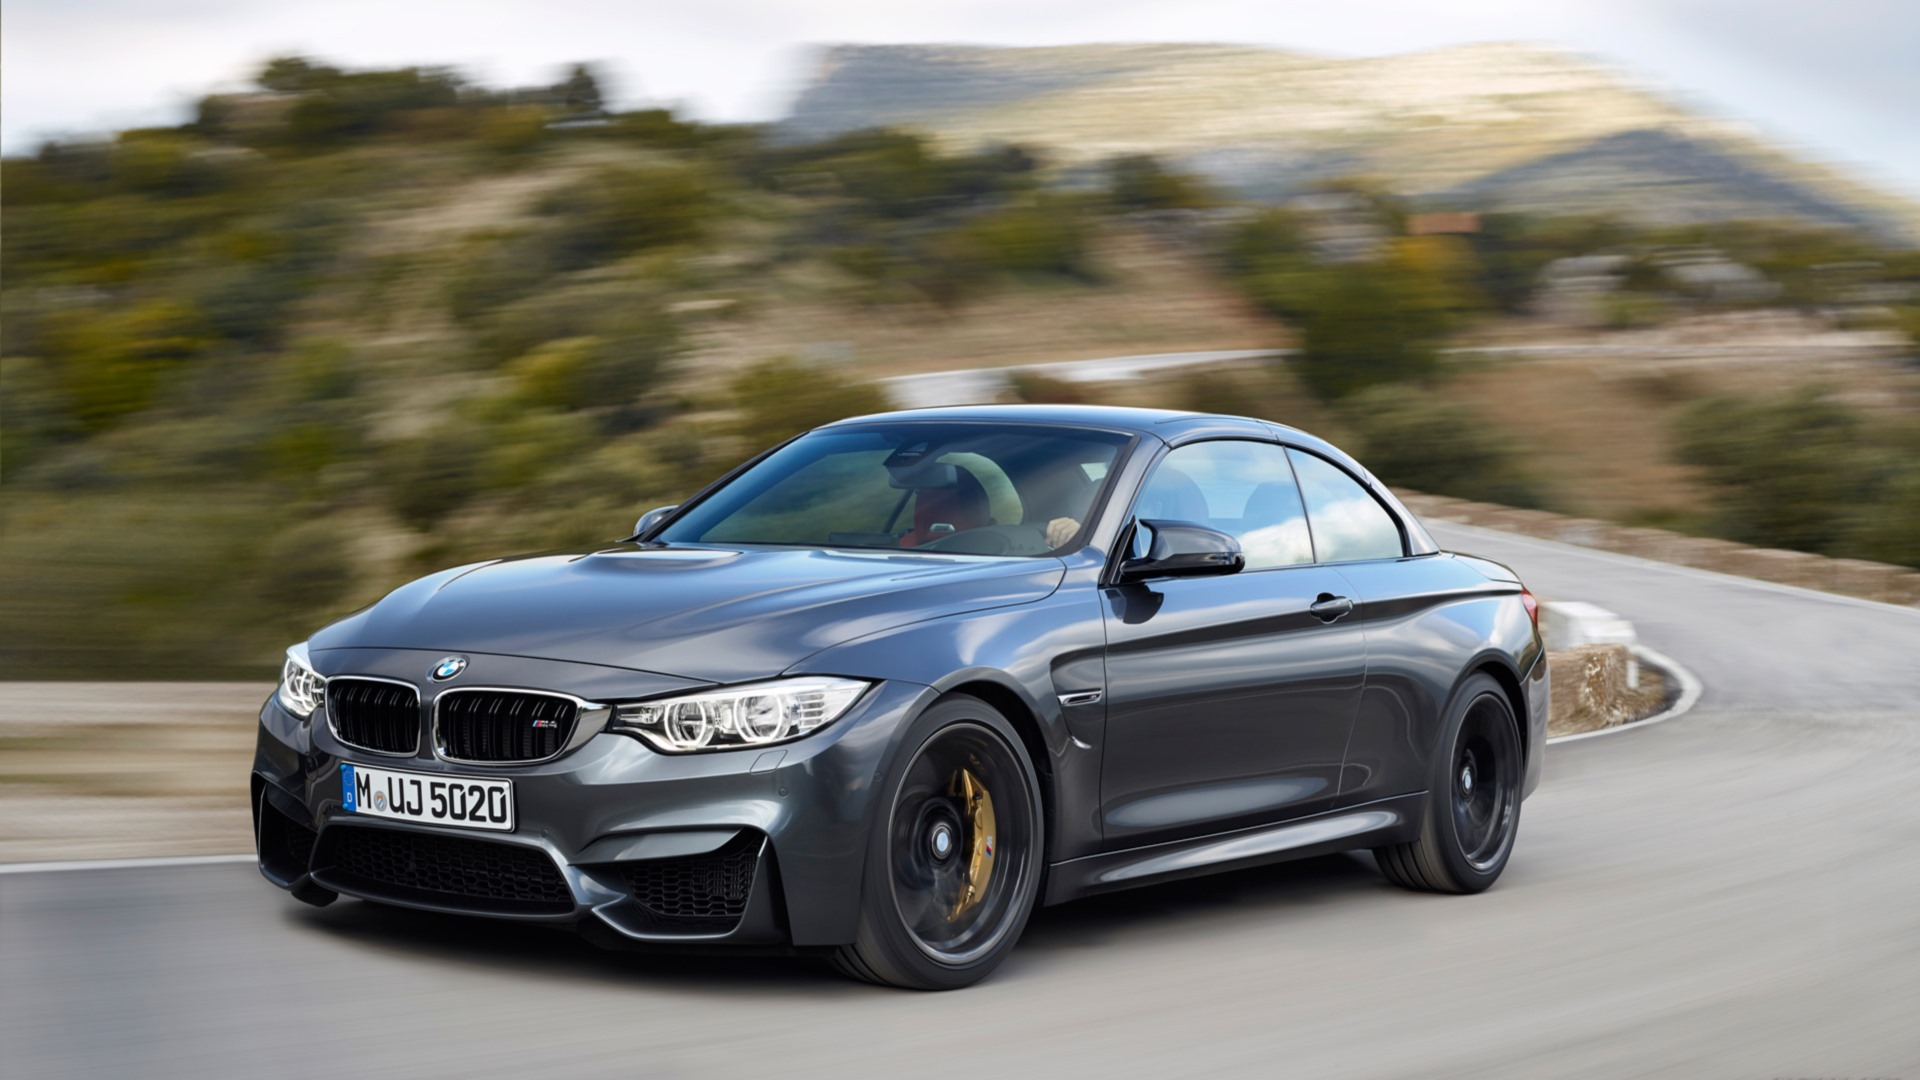 2015 Bmw M4 Cabrio Full Hd Fond D 233 Cran And Arri 232 Re Plan